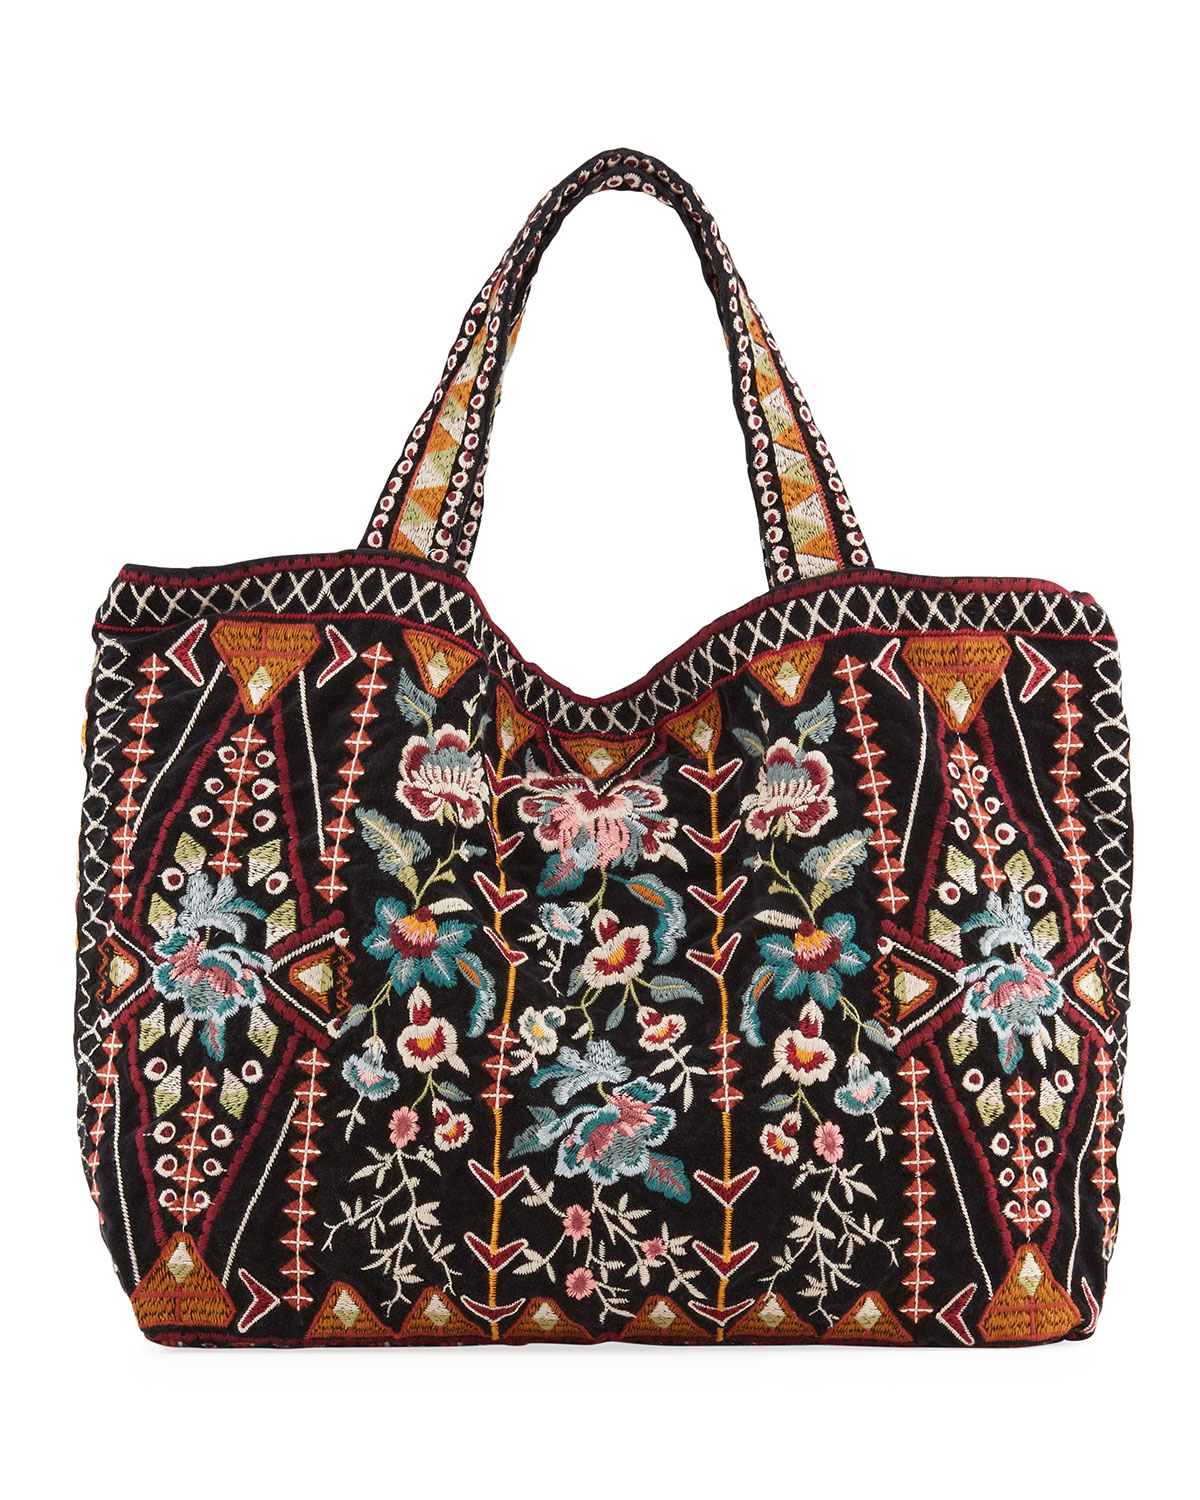 Johnny Was Embroidered Velveteen Tote Bag